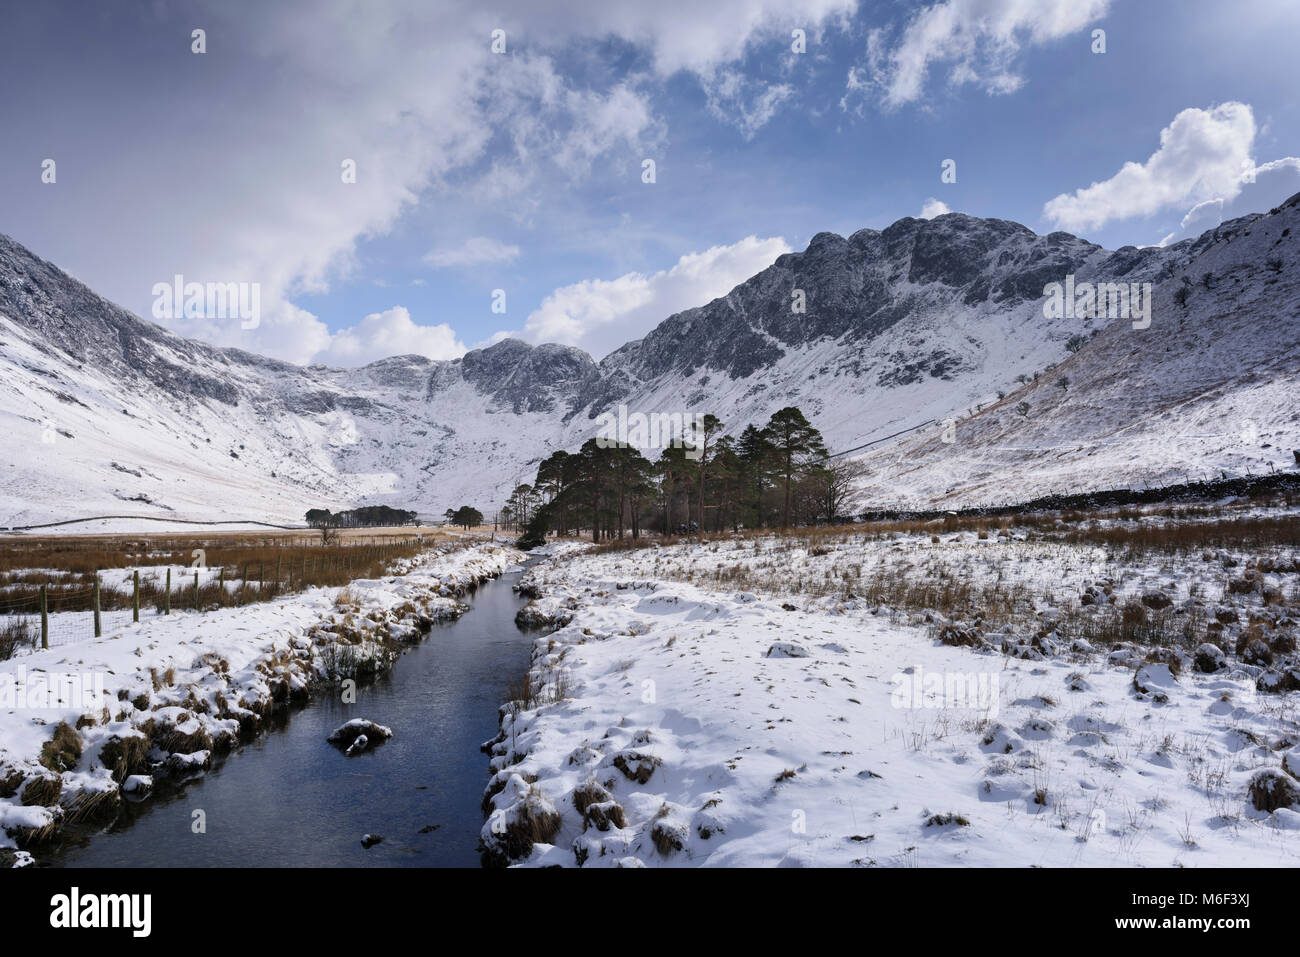 Winter snow clad fell Haystacks a mountain in the Buttermere region of the English Lake District. The landscape - Stock Image